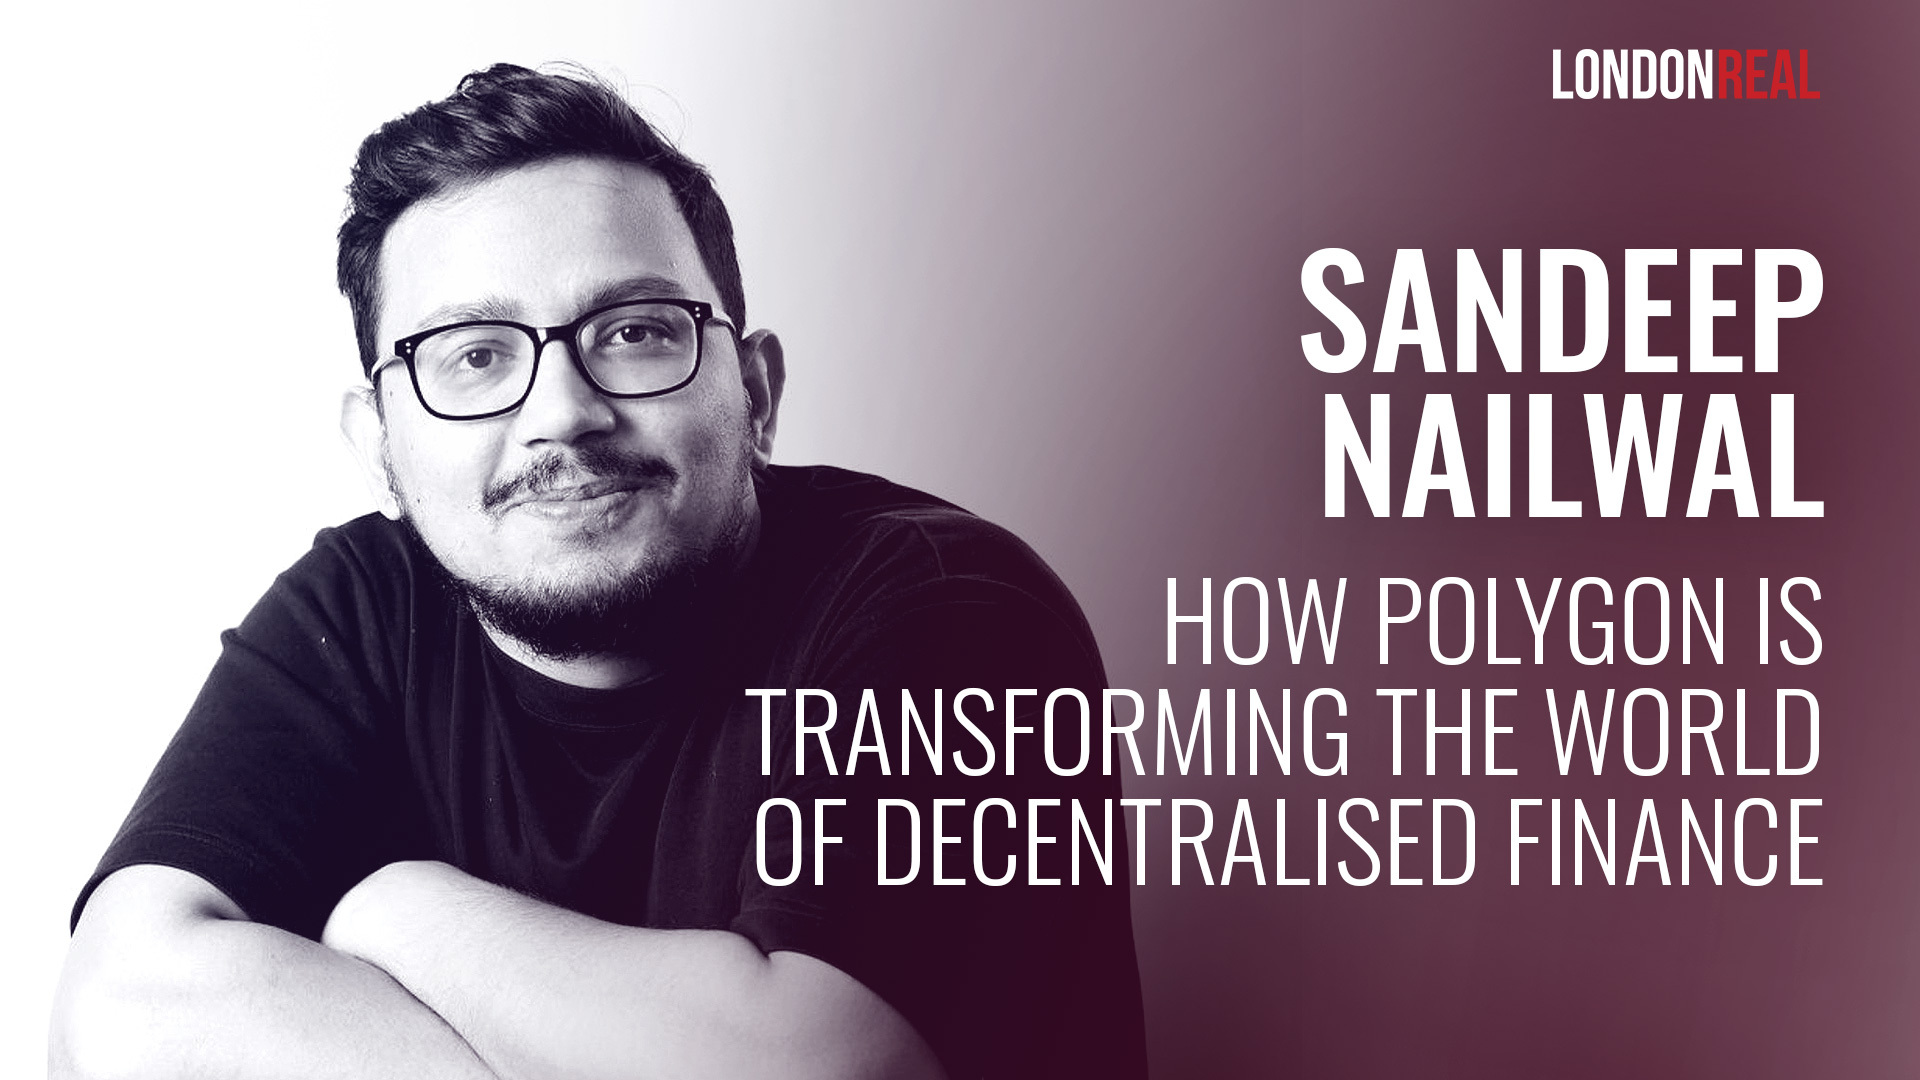 Sandeep Nailwal - How Polygon Is Transforming The World Of Decentralised Finance